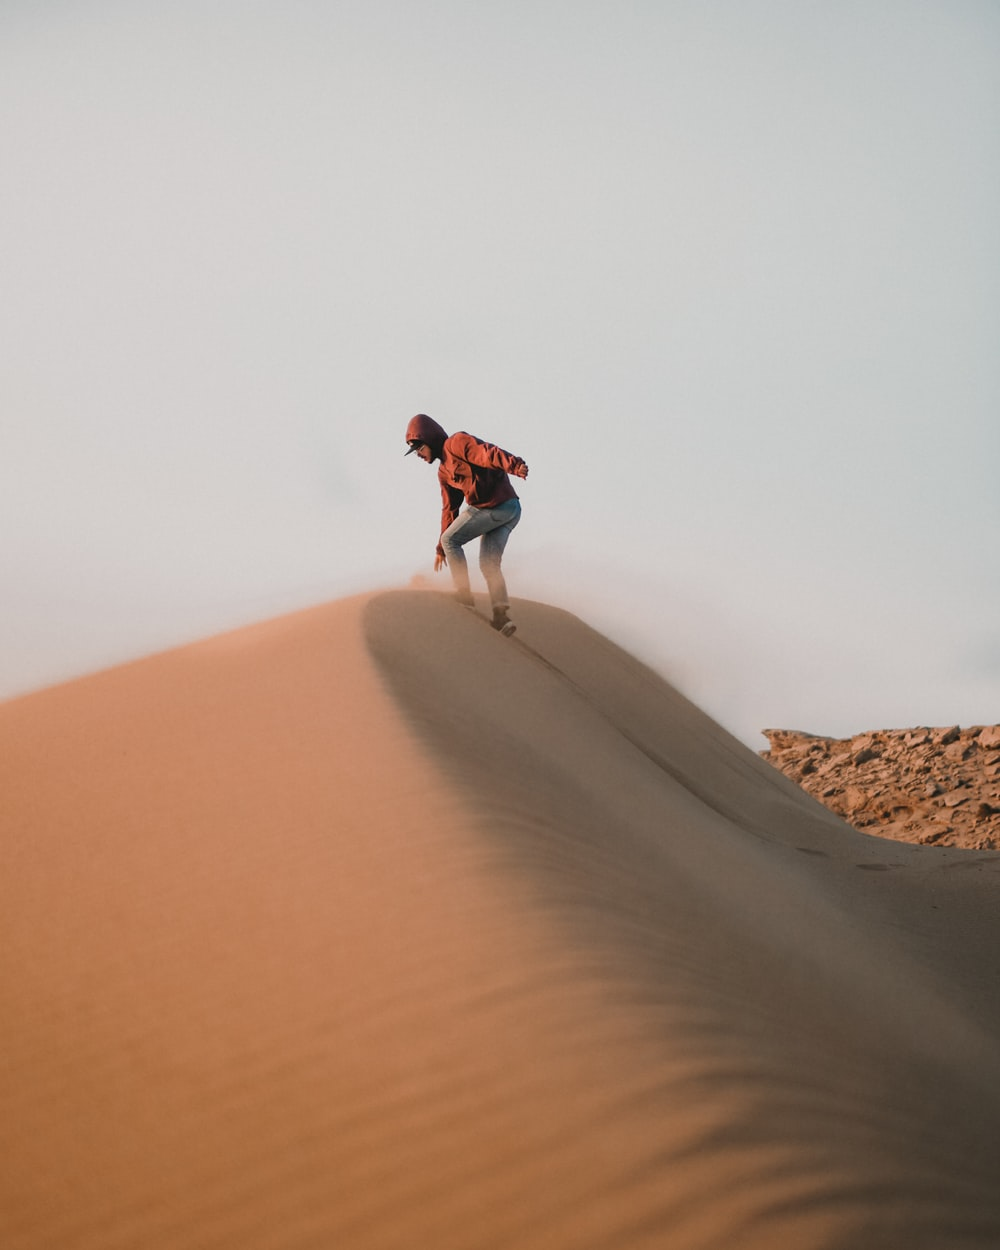 man in red jacket and white pants walking on sand dunes during daytime